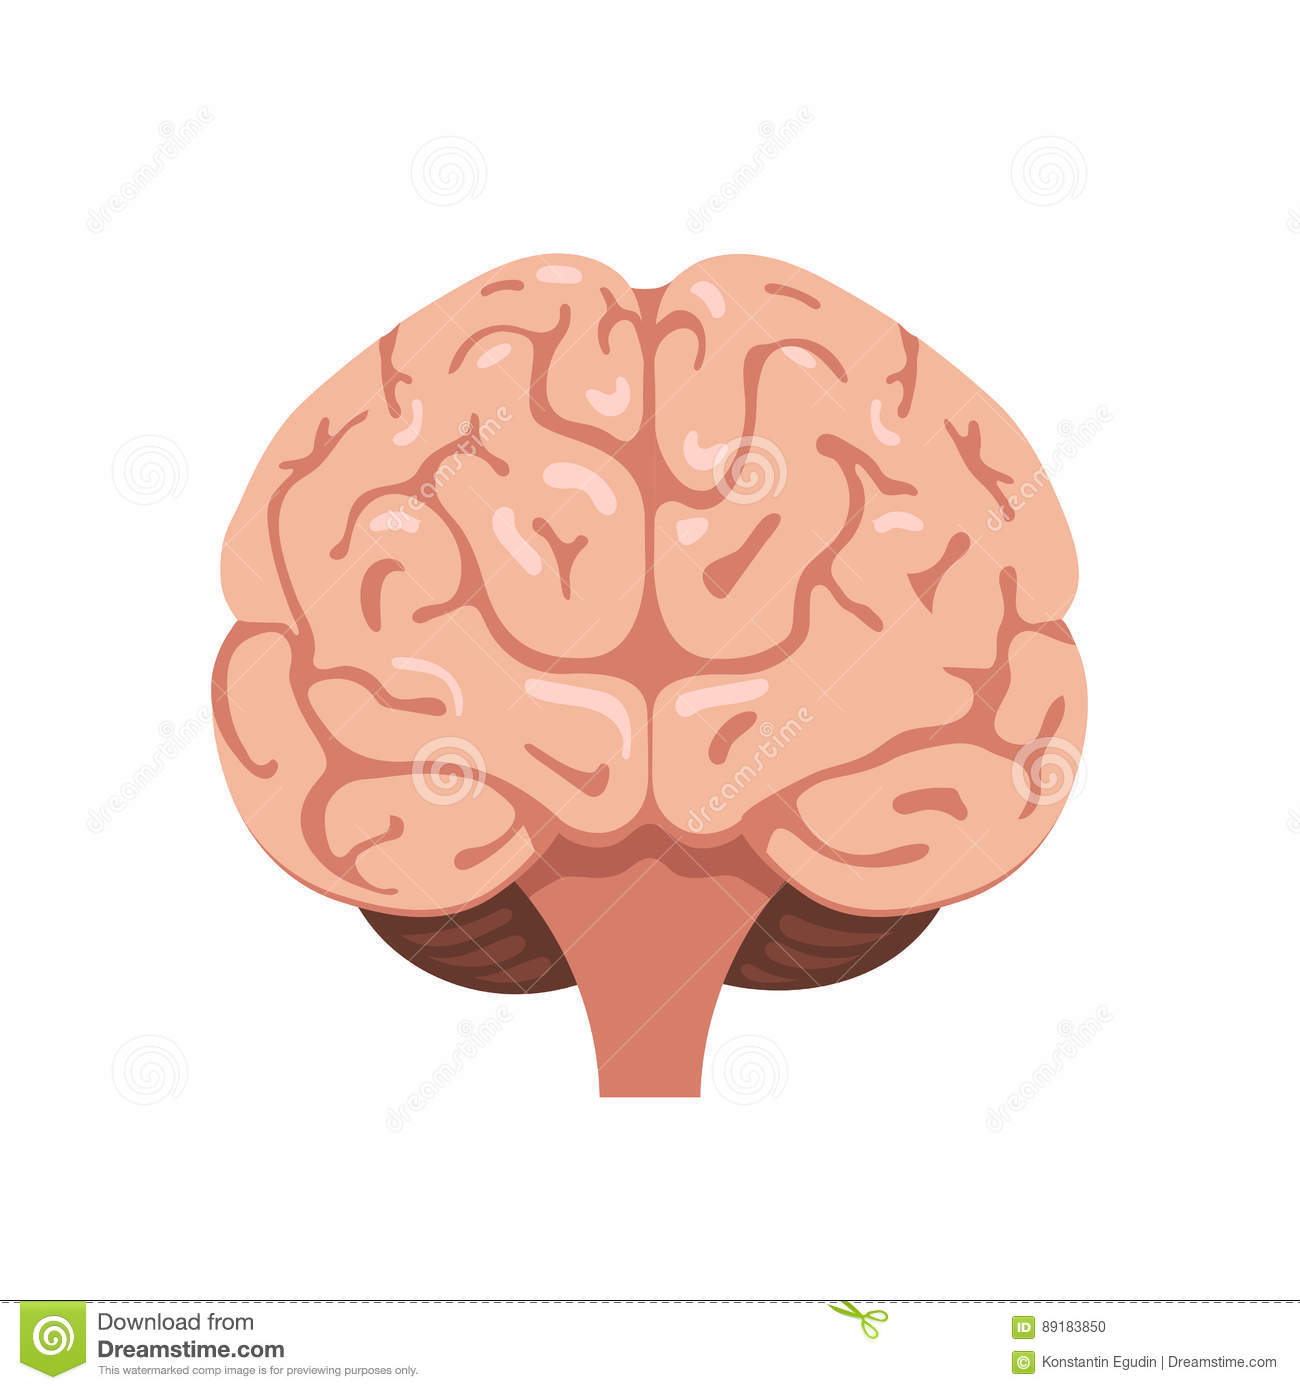 brain front view icon stock vector illustration of